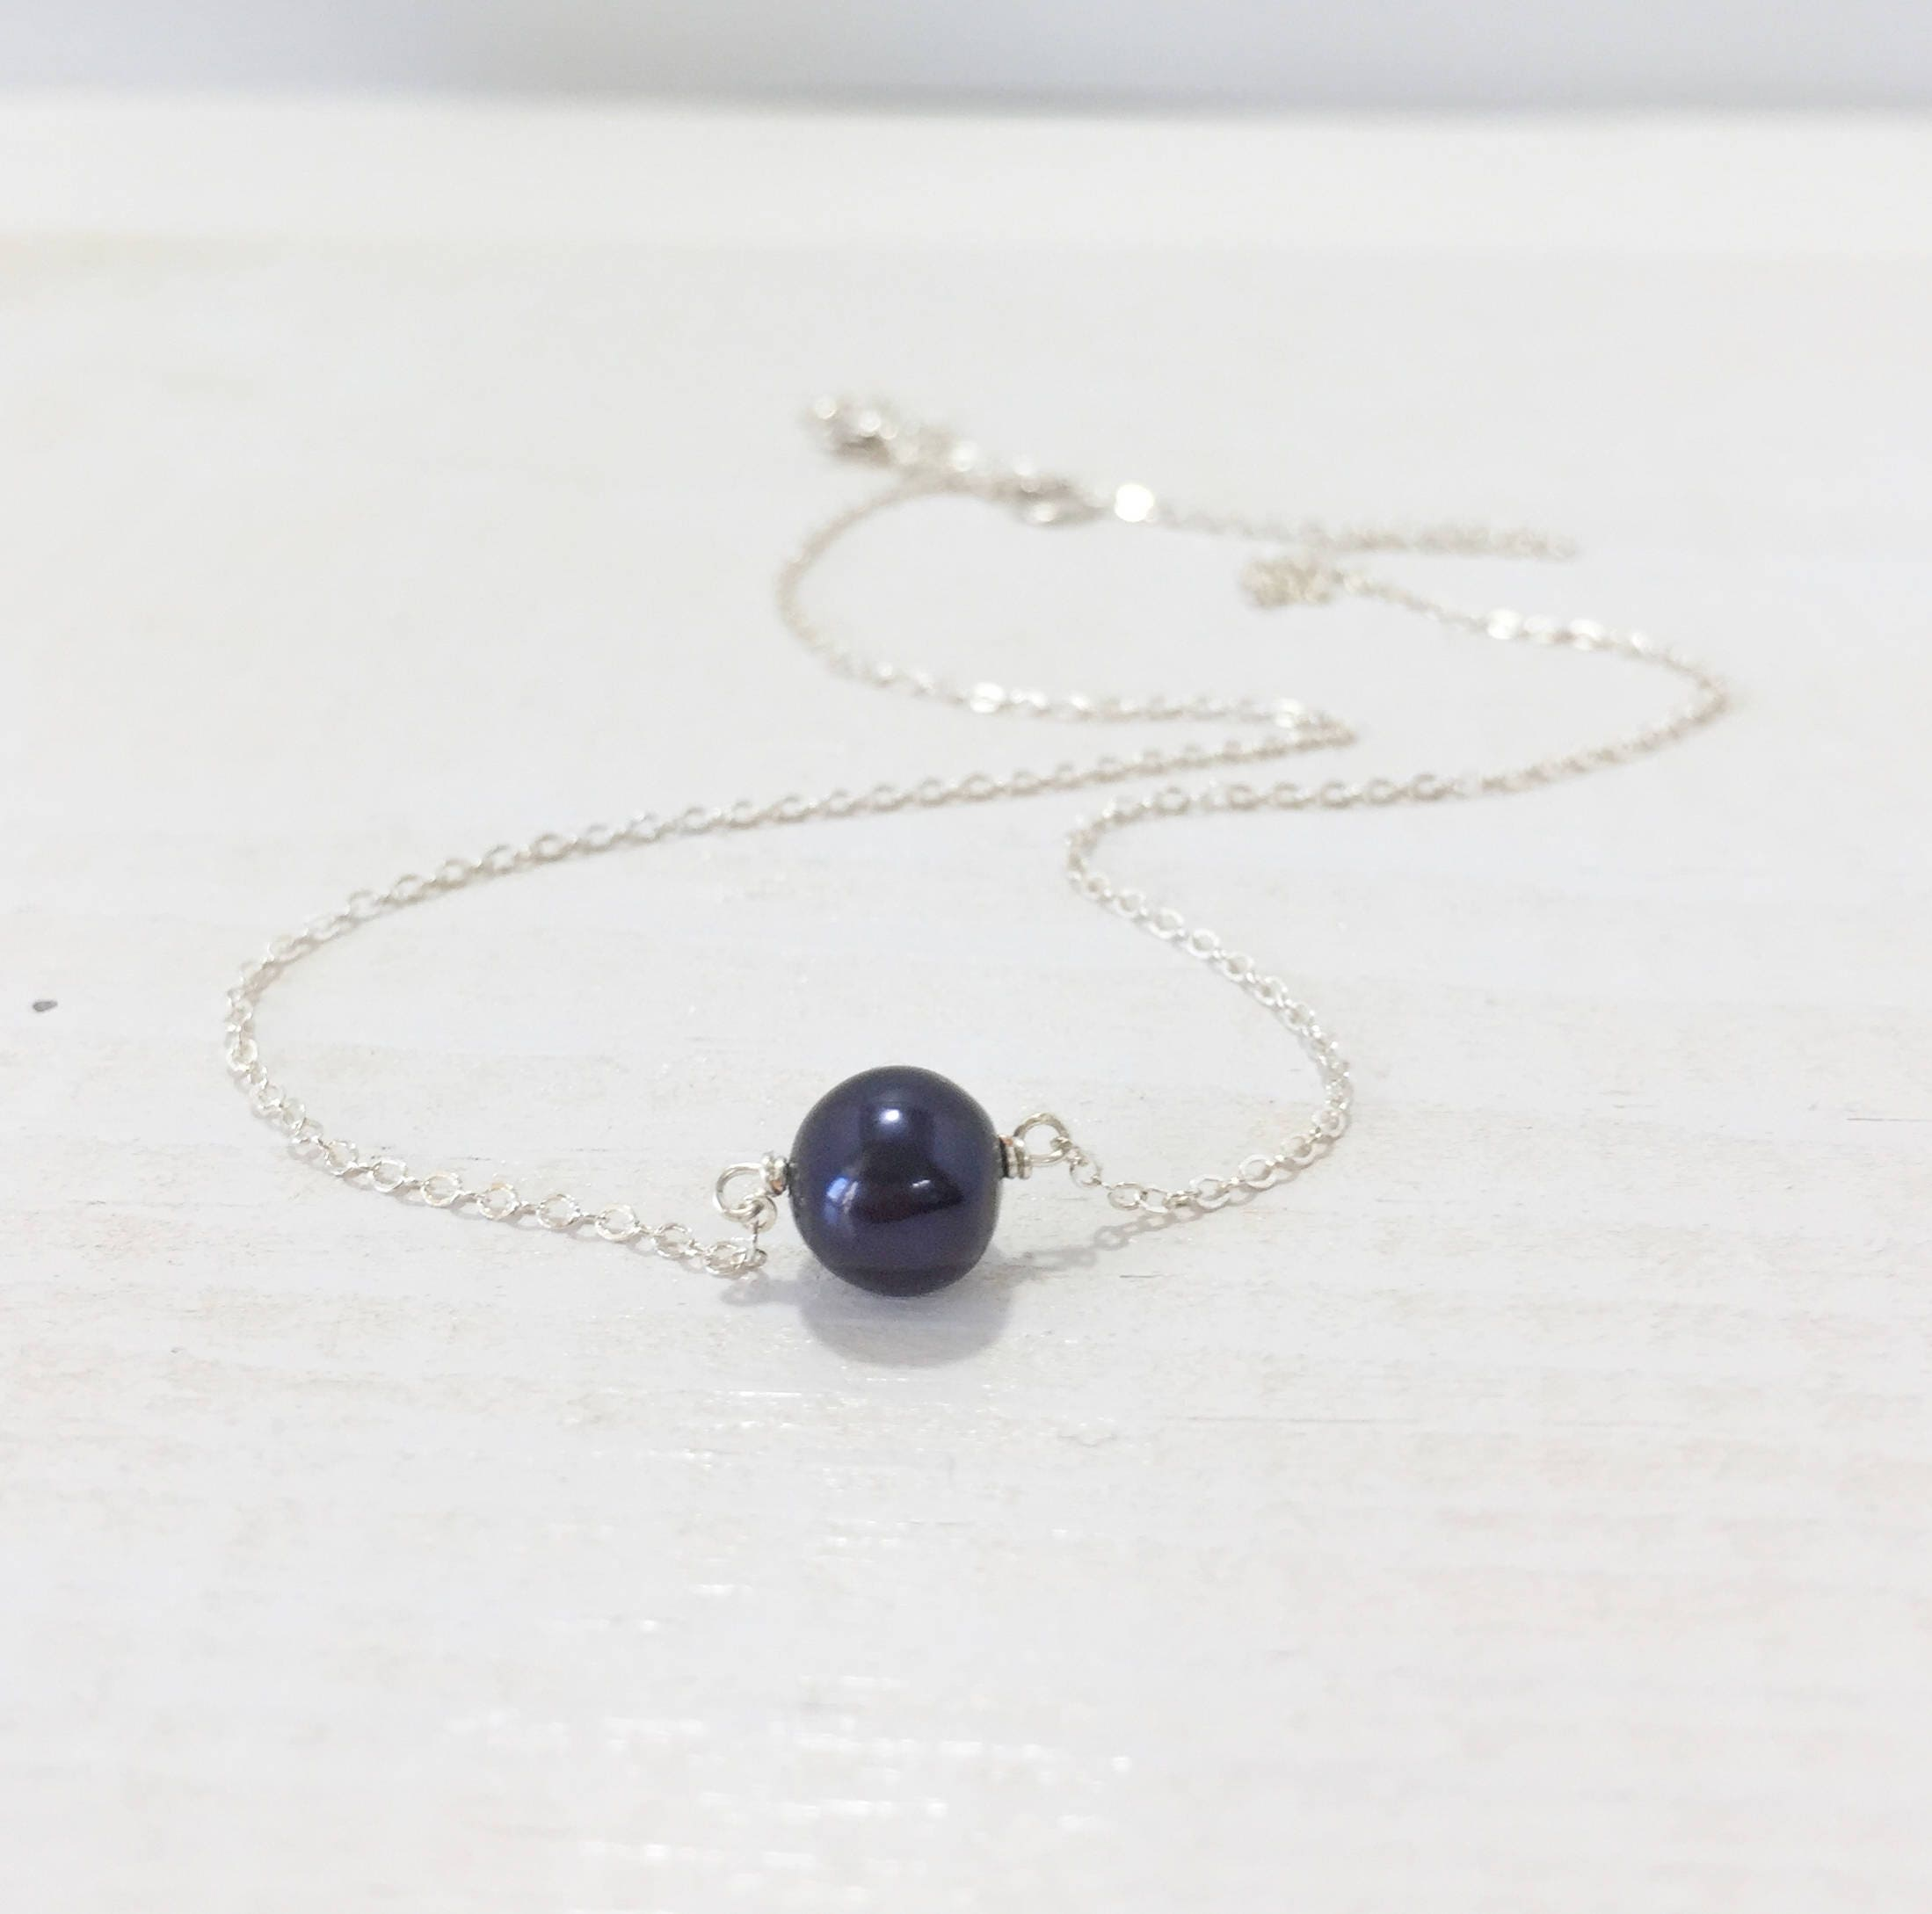 Solitaire Black Pearl Necklace On Delicate Silver Chain Simple